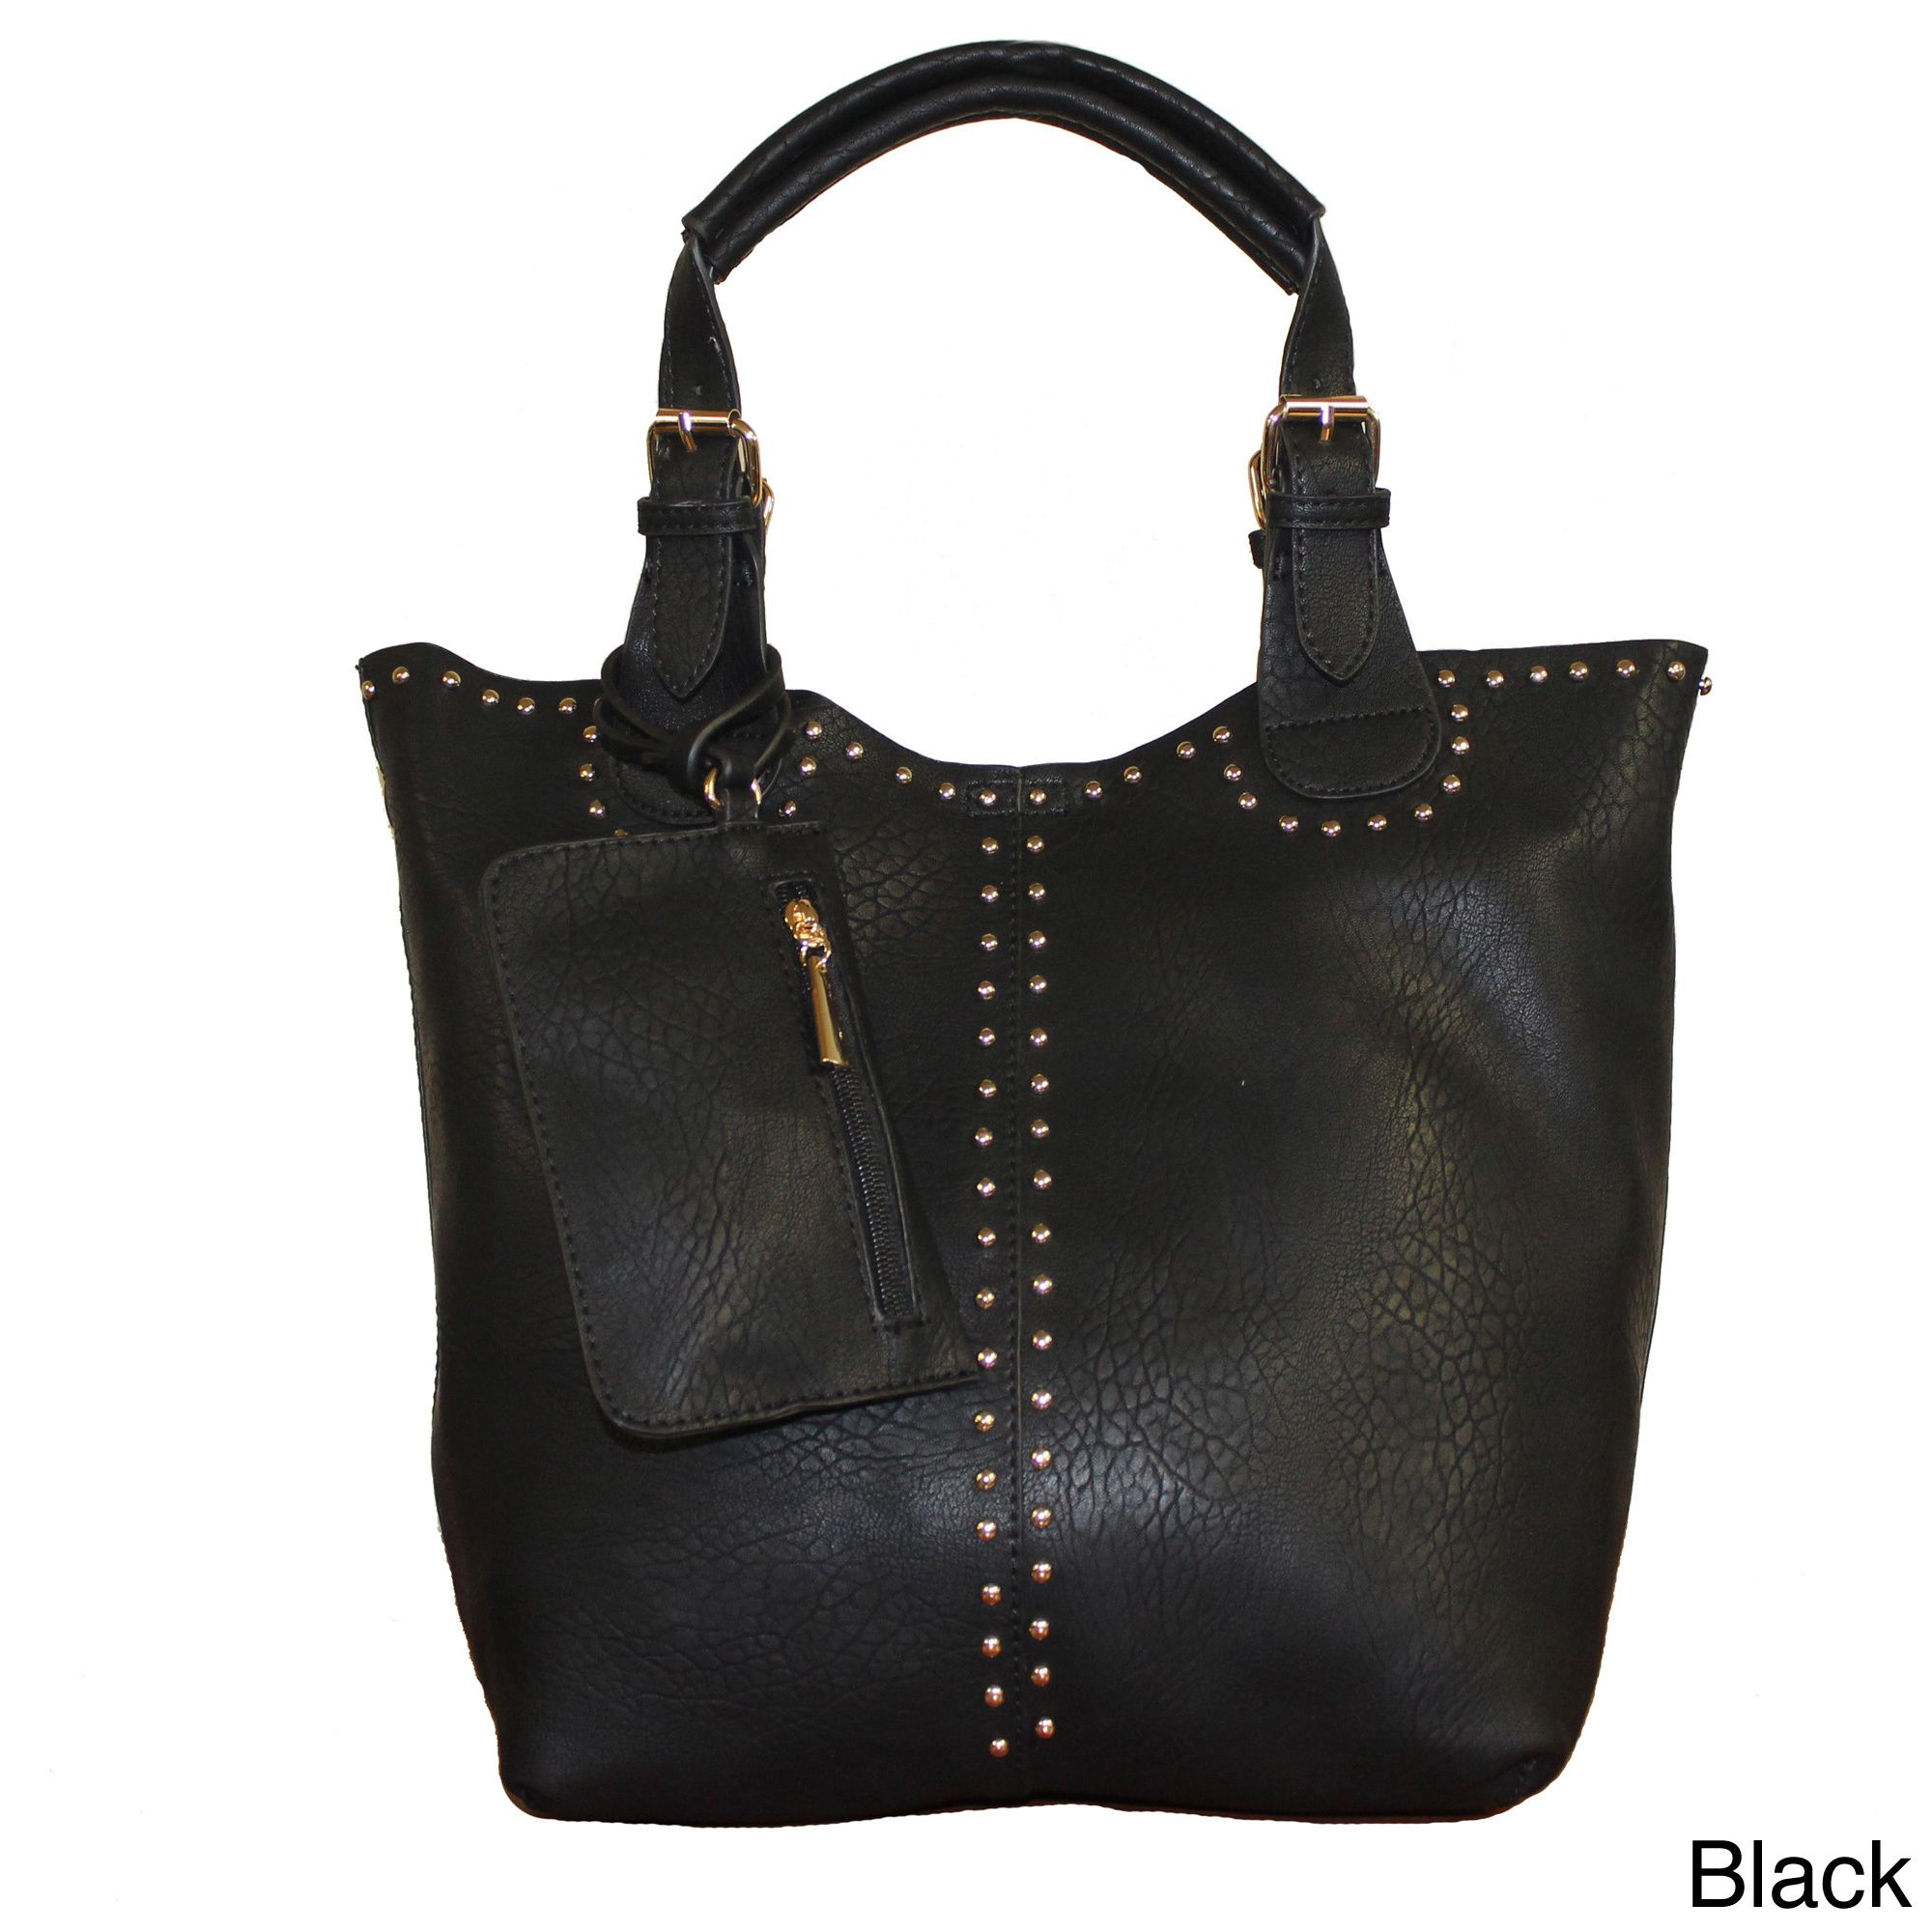 Add stylish flair to any look with the Faina 3-in-1 studded Tote by Lithyc. This vegan leather handbag features trendy metal stud trim and is a perfect blend of fashion, flair and function, ideal for day to evening wear.